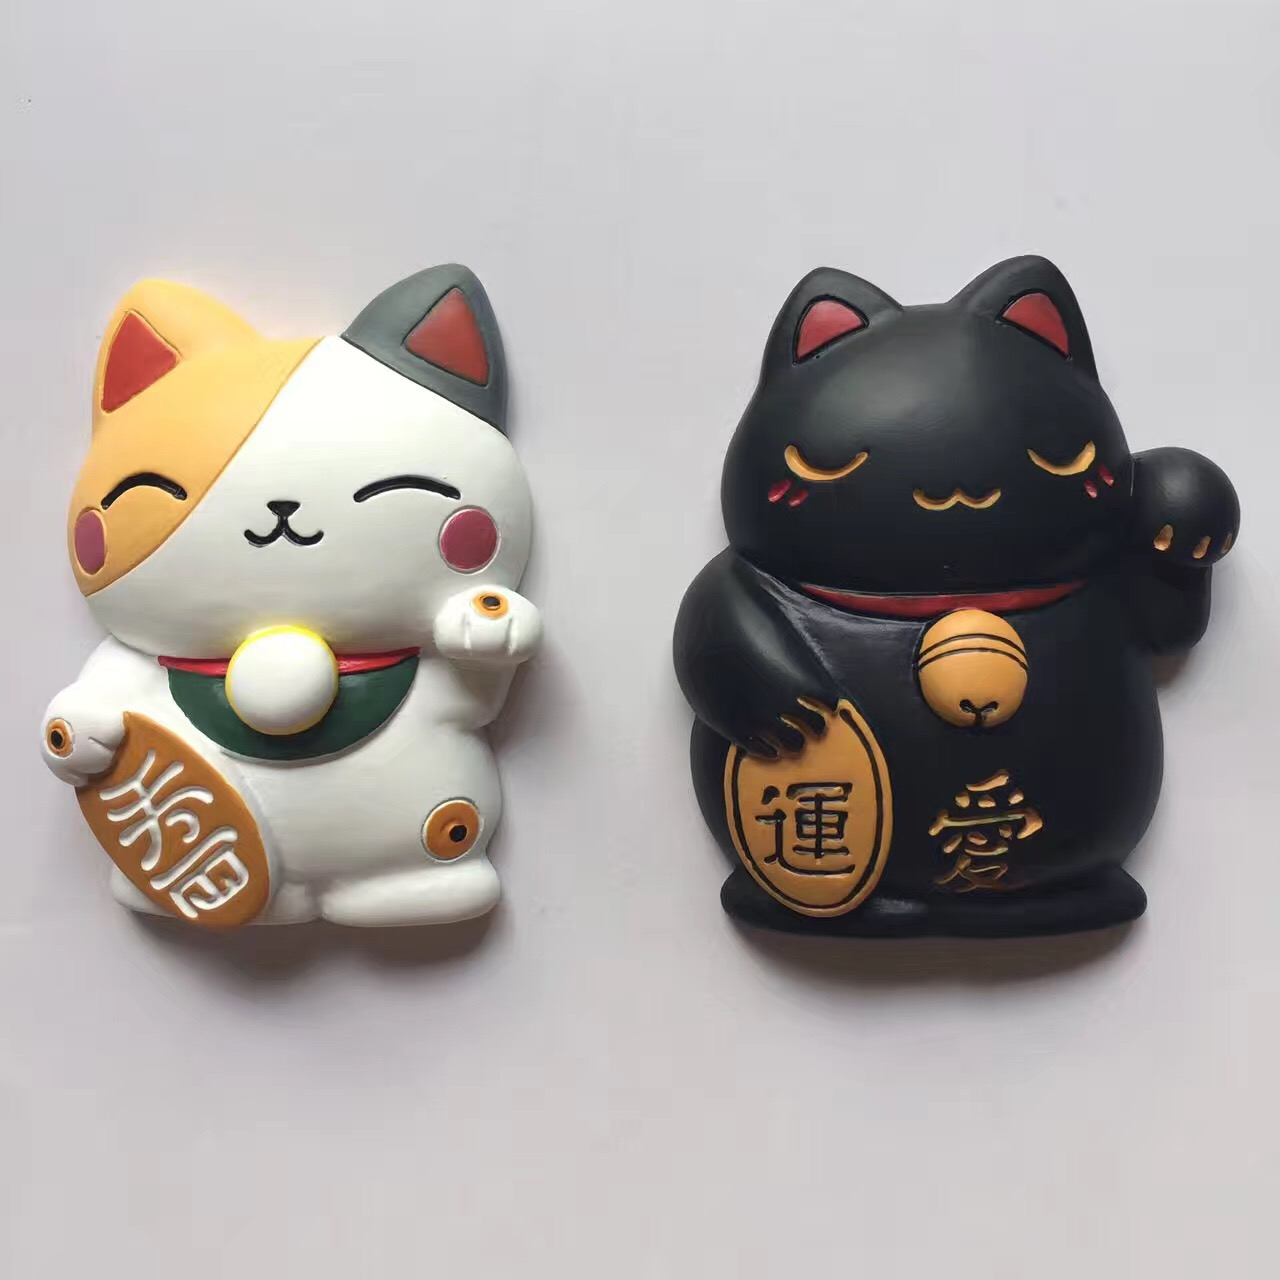 Resin 3D lucky cat fridge magnet cell phone case decor